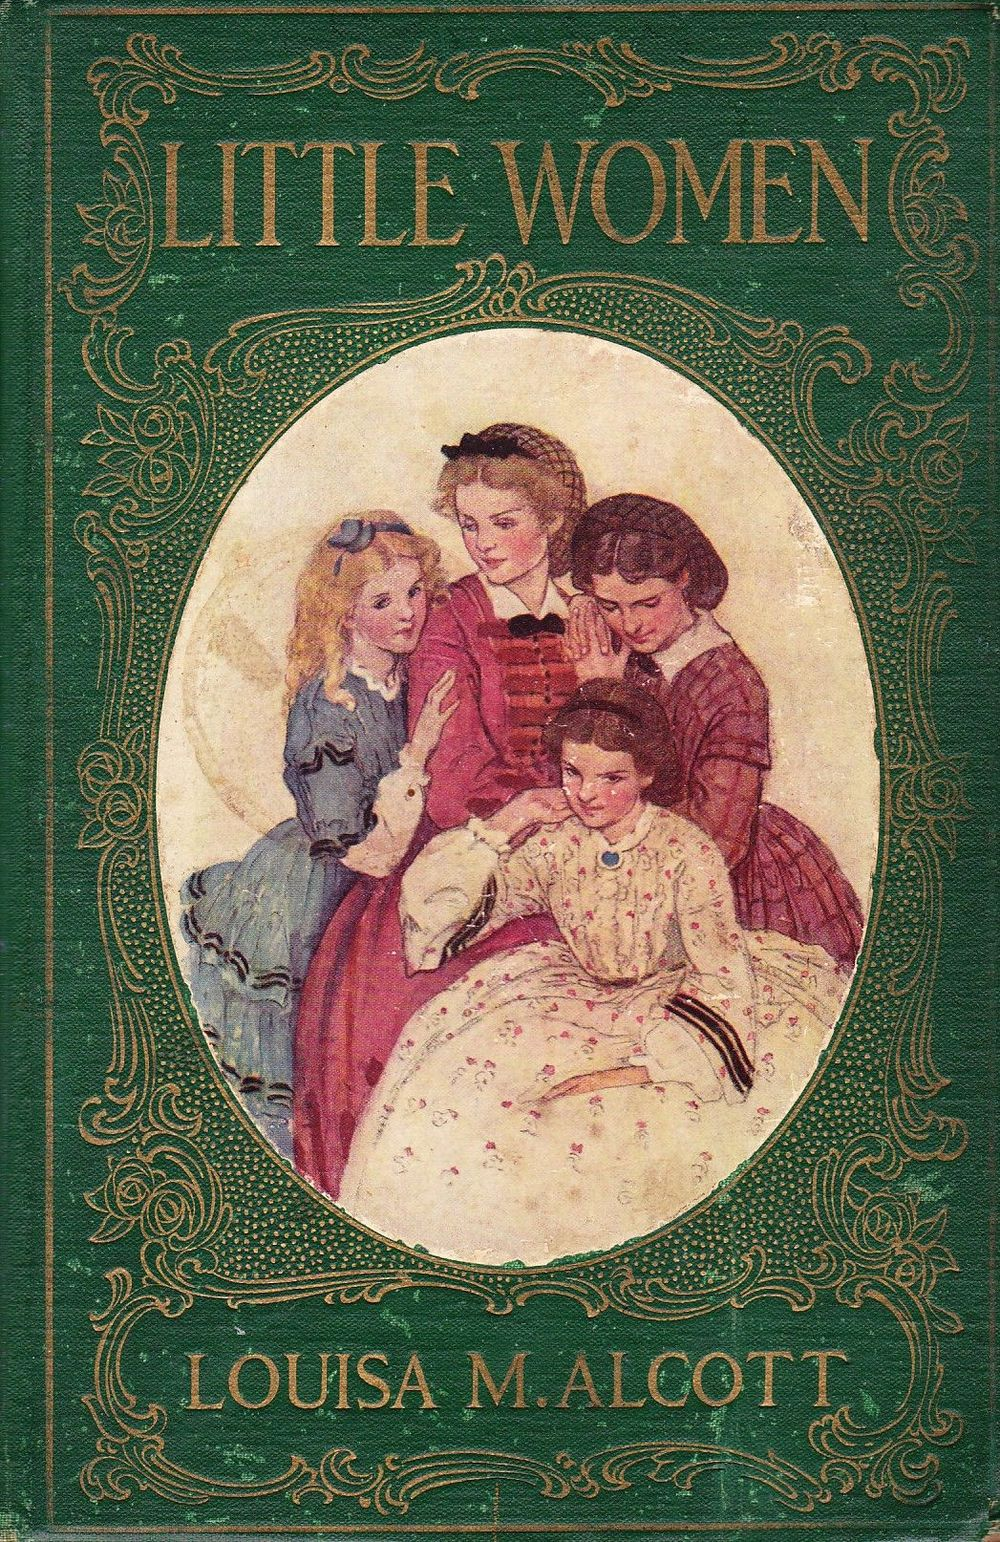 Little Women Louisa May Alcott in addition Star Wars Rebel Starfighter together with Hunger Games Movie Poster Wallpapers Wallpaper further The Maze Runner Official Uk Trailer furthermore New Catching Fire Still. on the twilight saga audio books